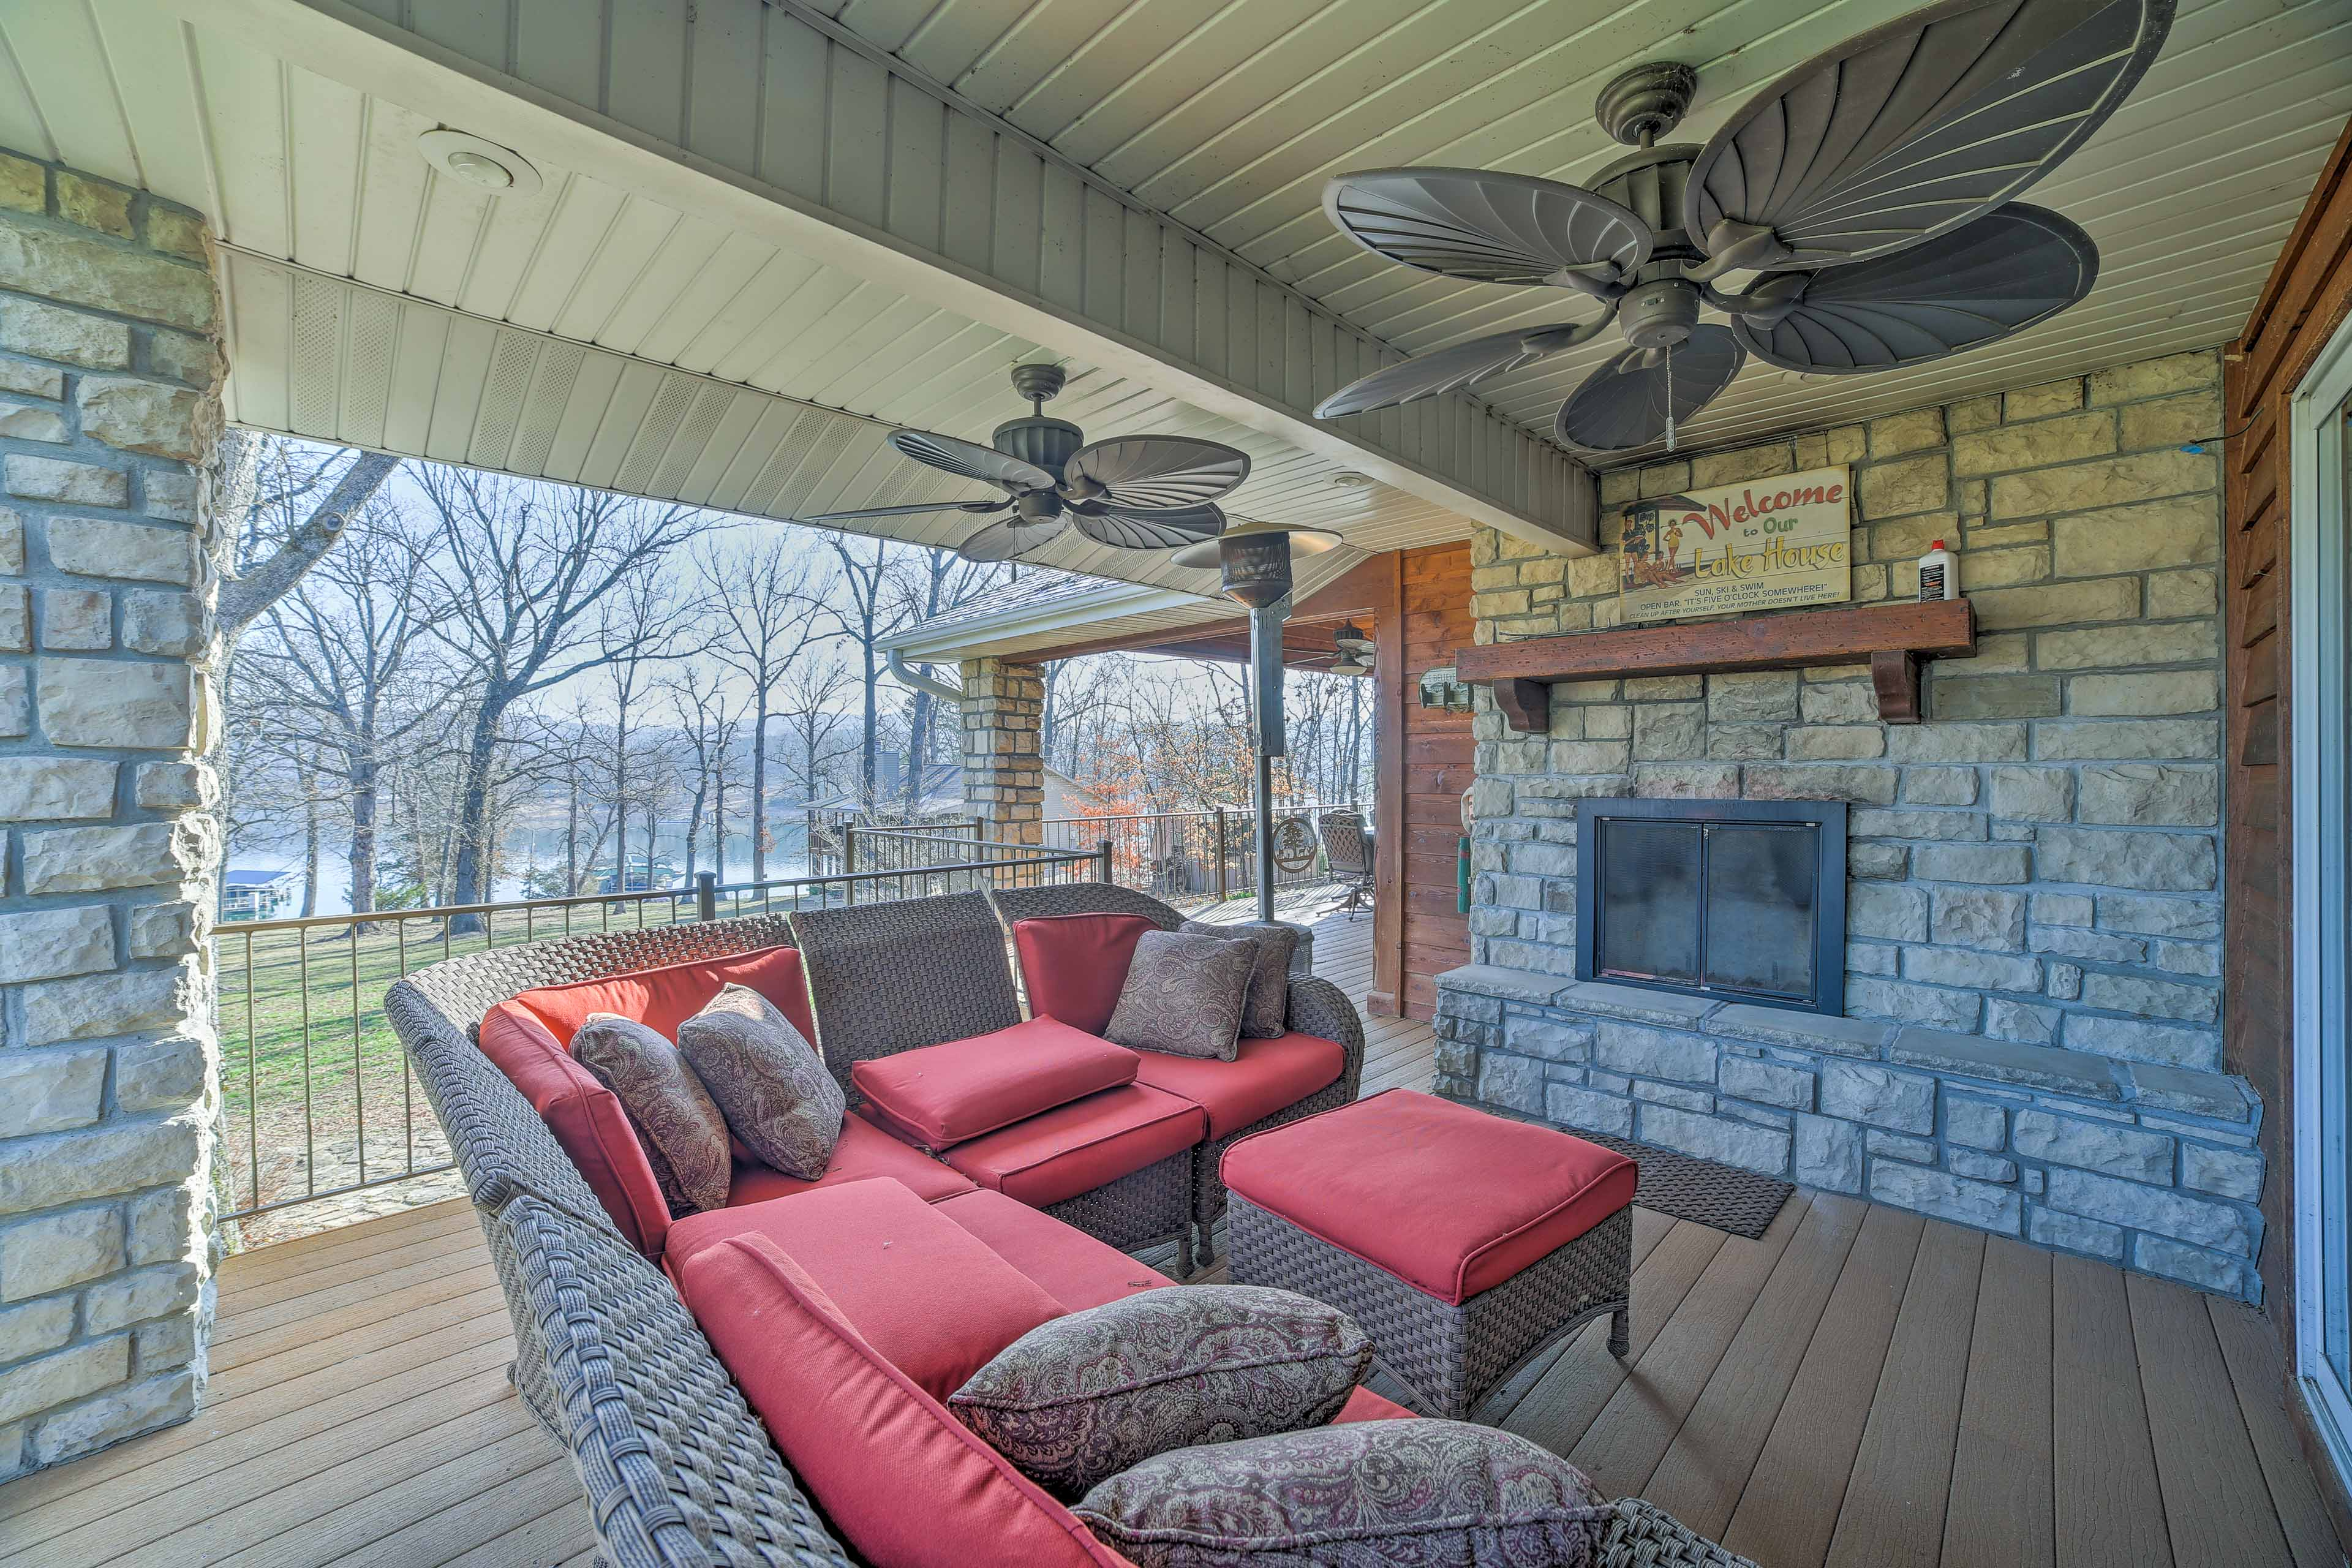 You'll love ending your day reclining by the fire while watching the sunset.